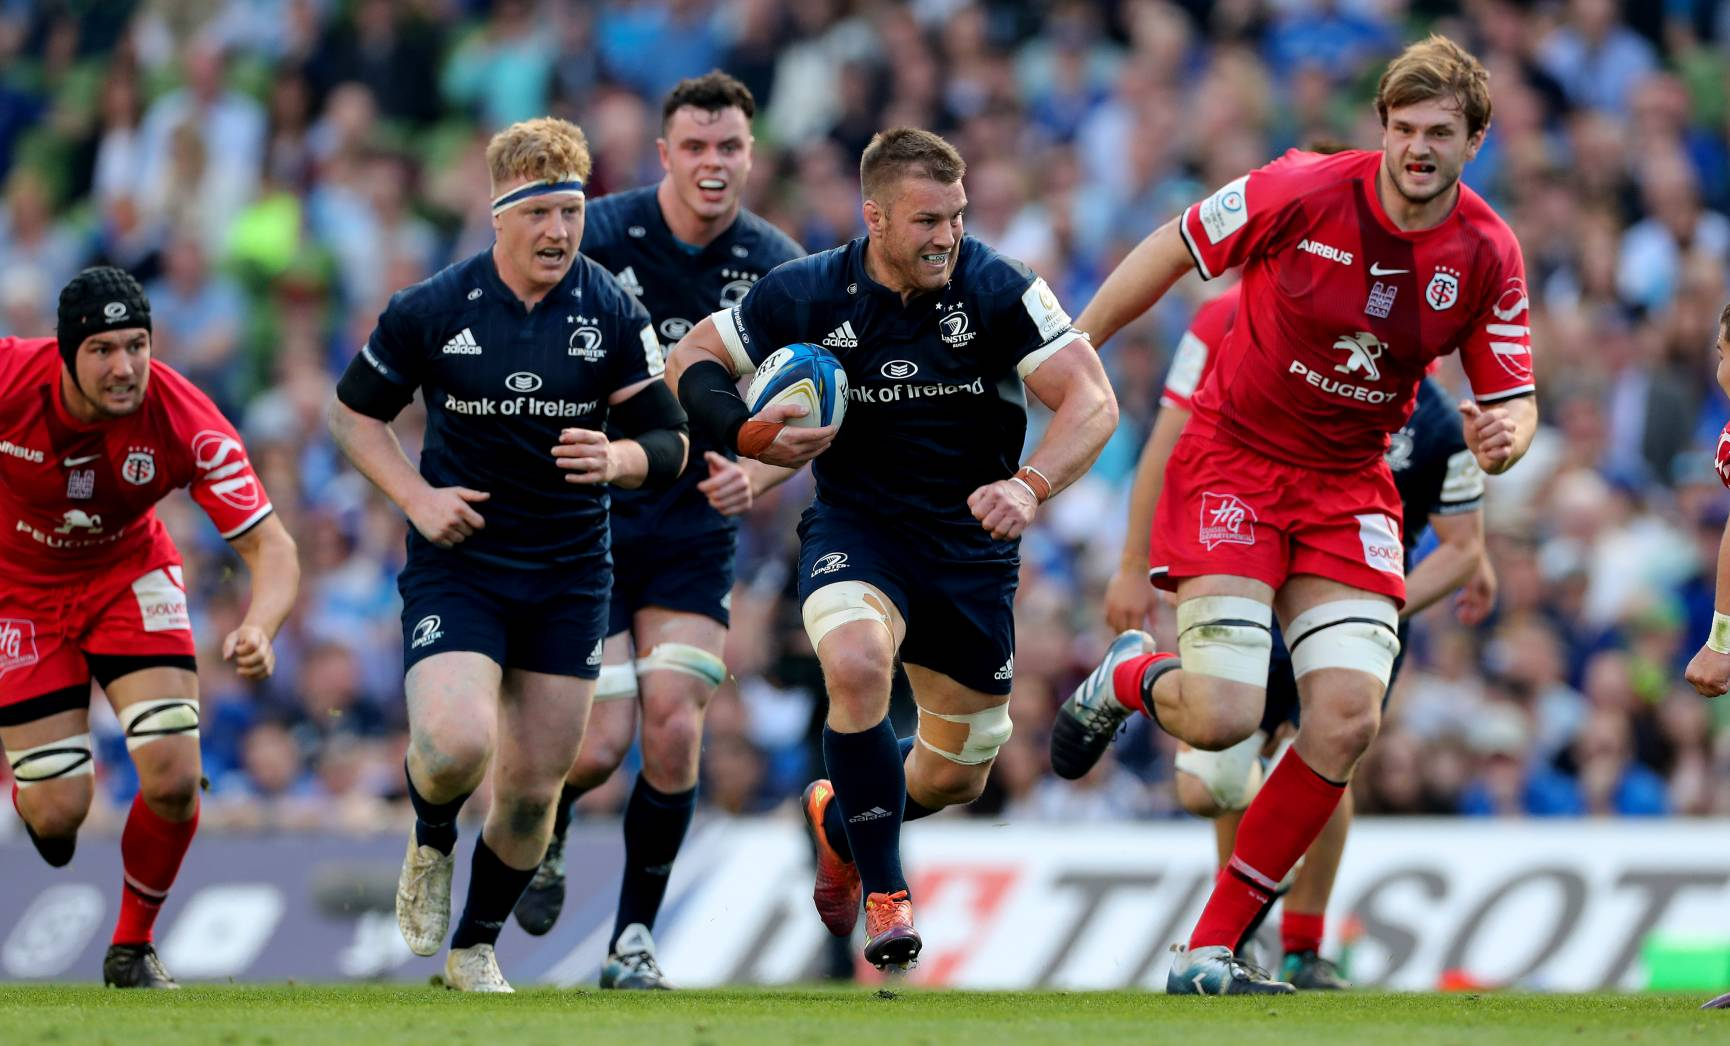 24a1f8c48d5 Irish Rugby | Heineken Champions Cup Final Preview: Leinster v Saracens